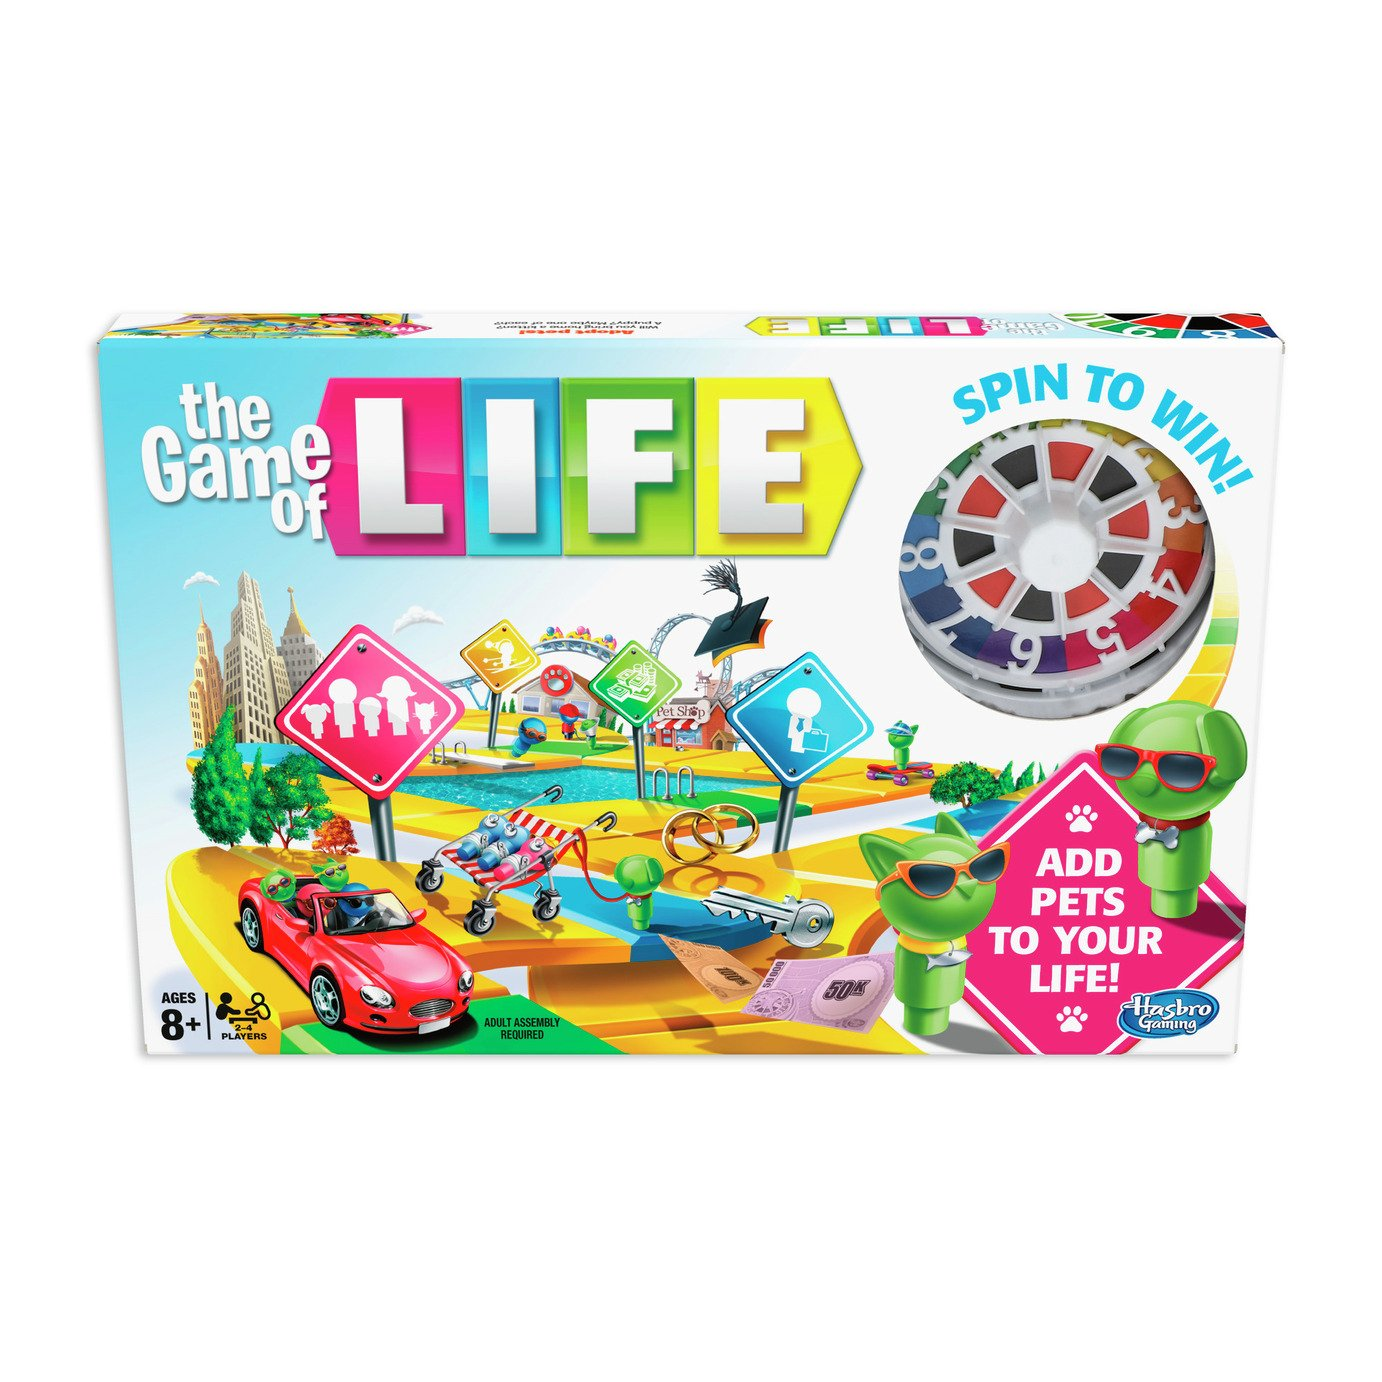 The Game of Life Classic Board Game from Hasbro Gaming